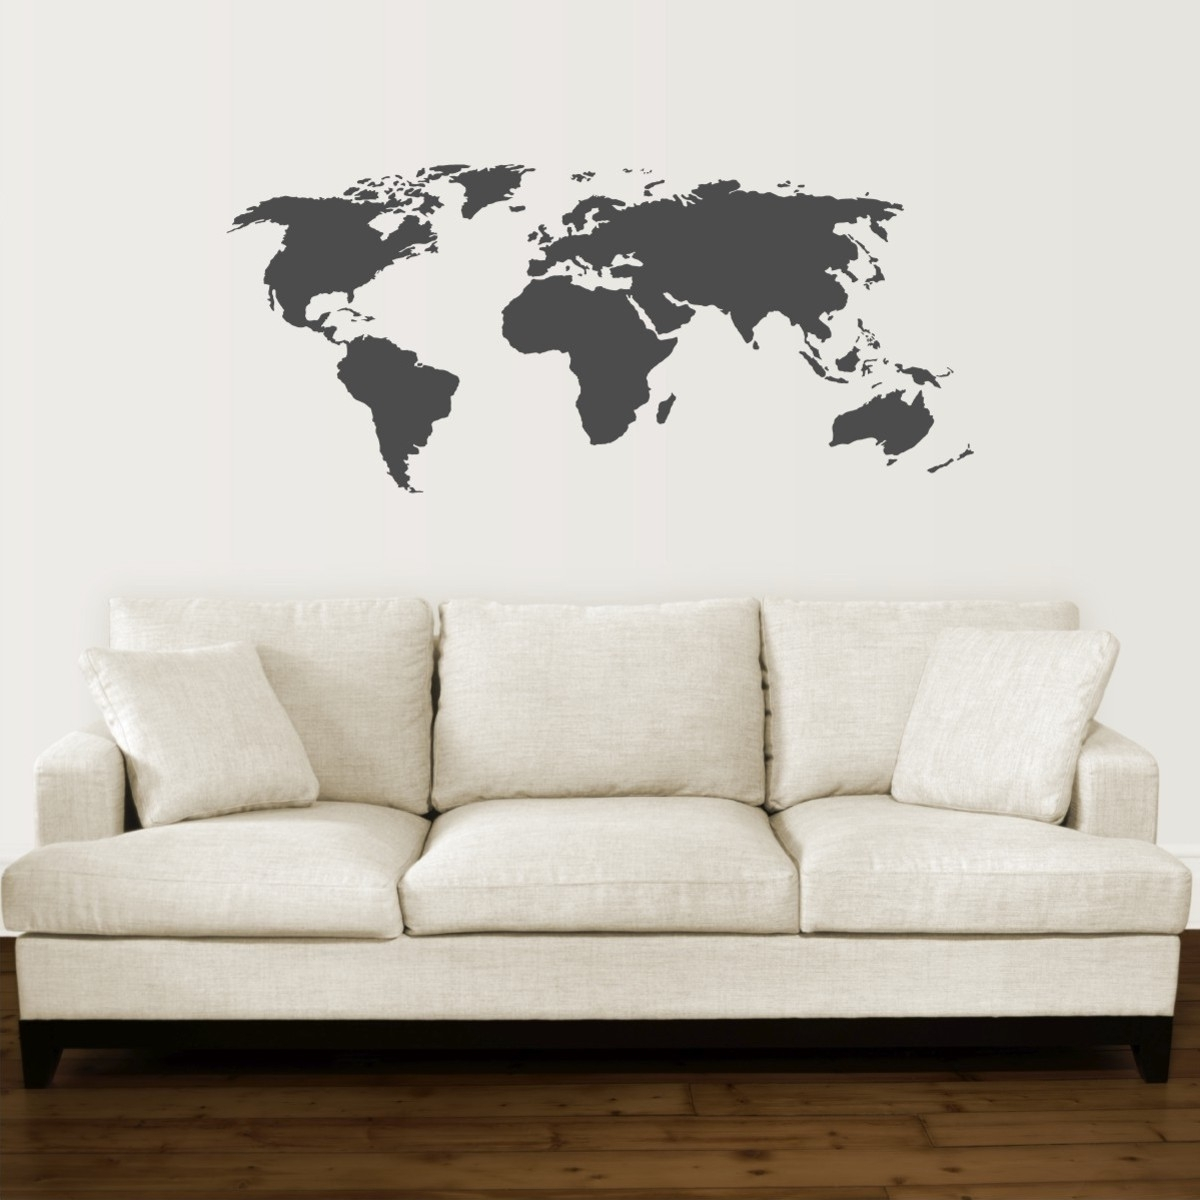 17 Cool Ideas For World Map Wall Art – Live Diy Ideas Pertaining To Newest Wall Art Map Of World (View 2 of 20)